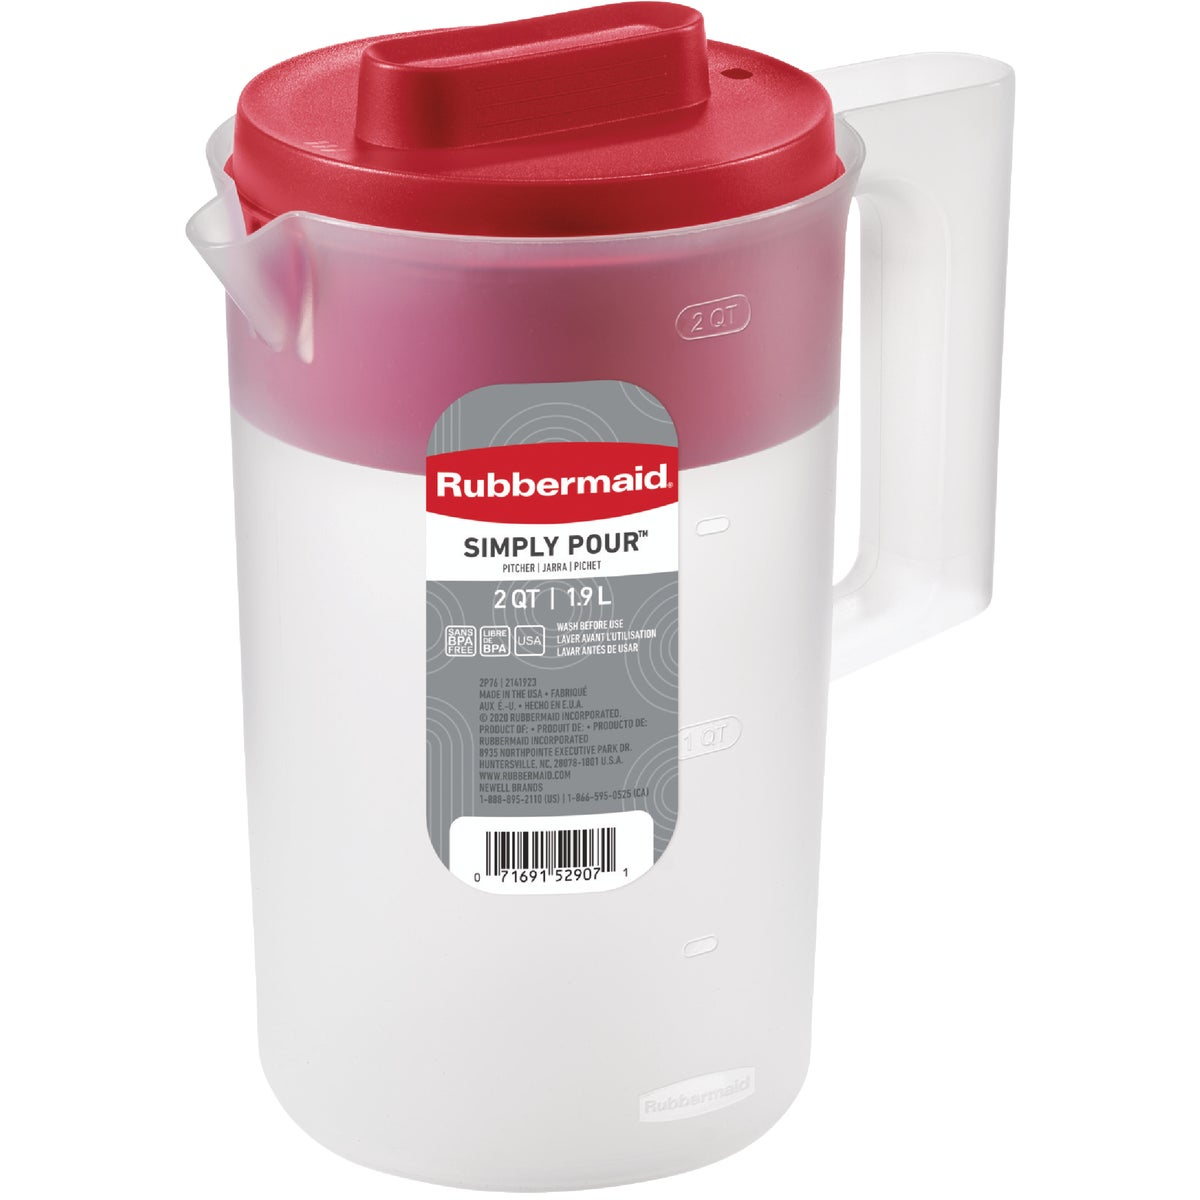 2.25QT RED LID PITCHER